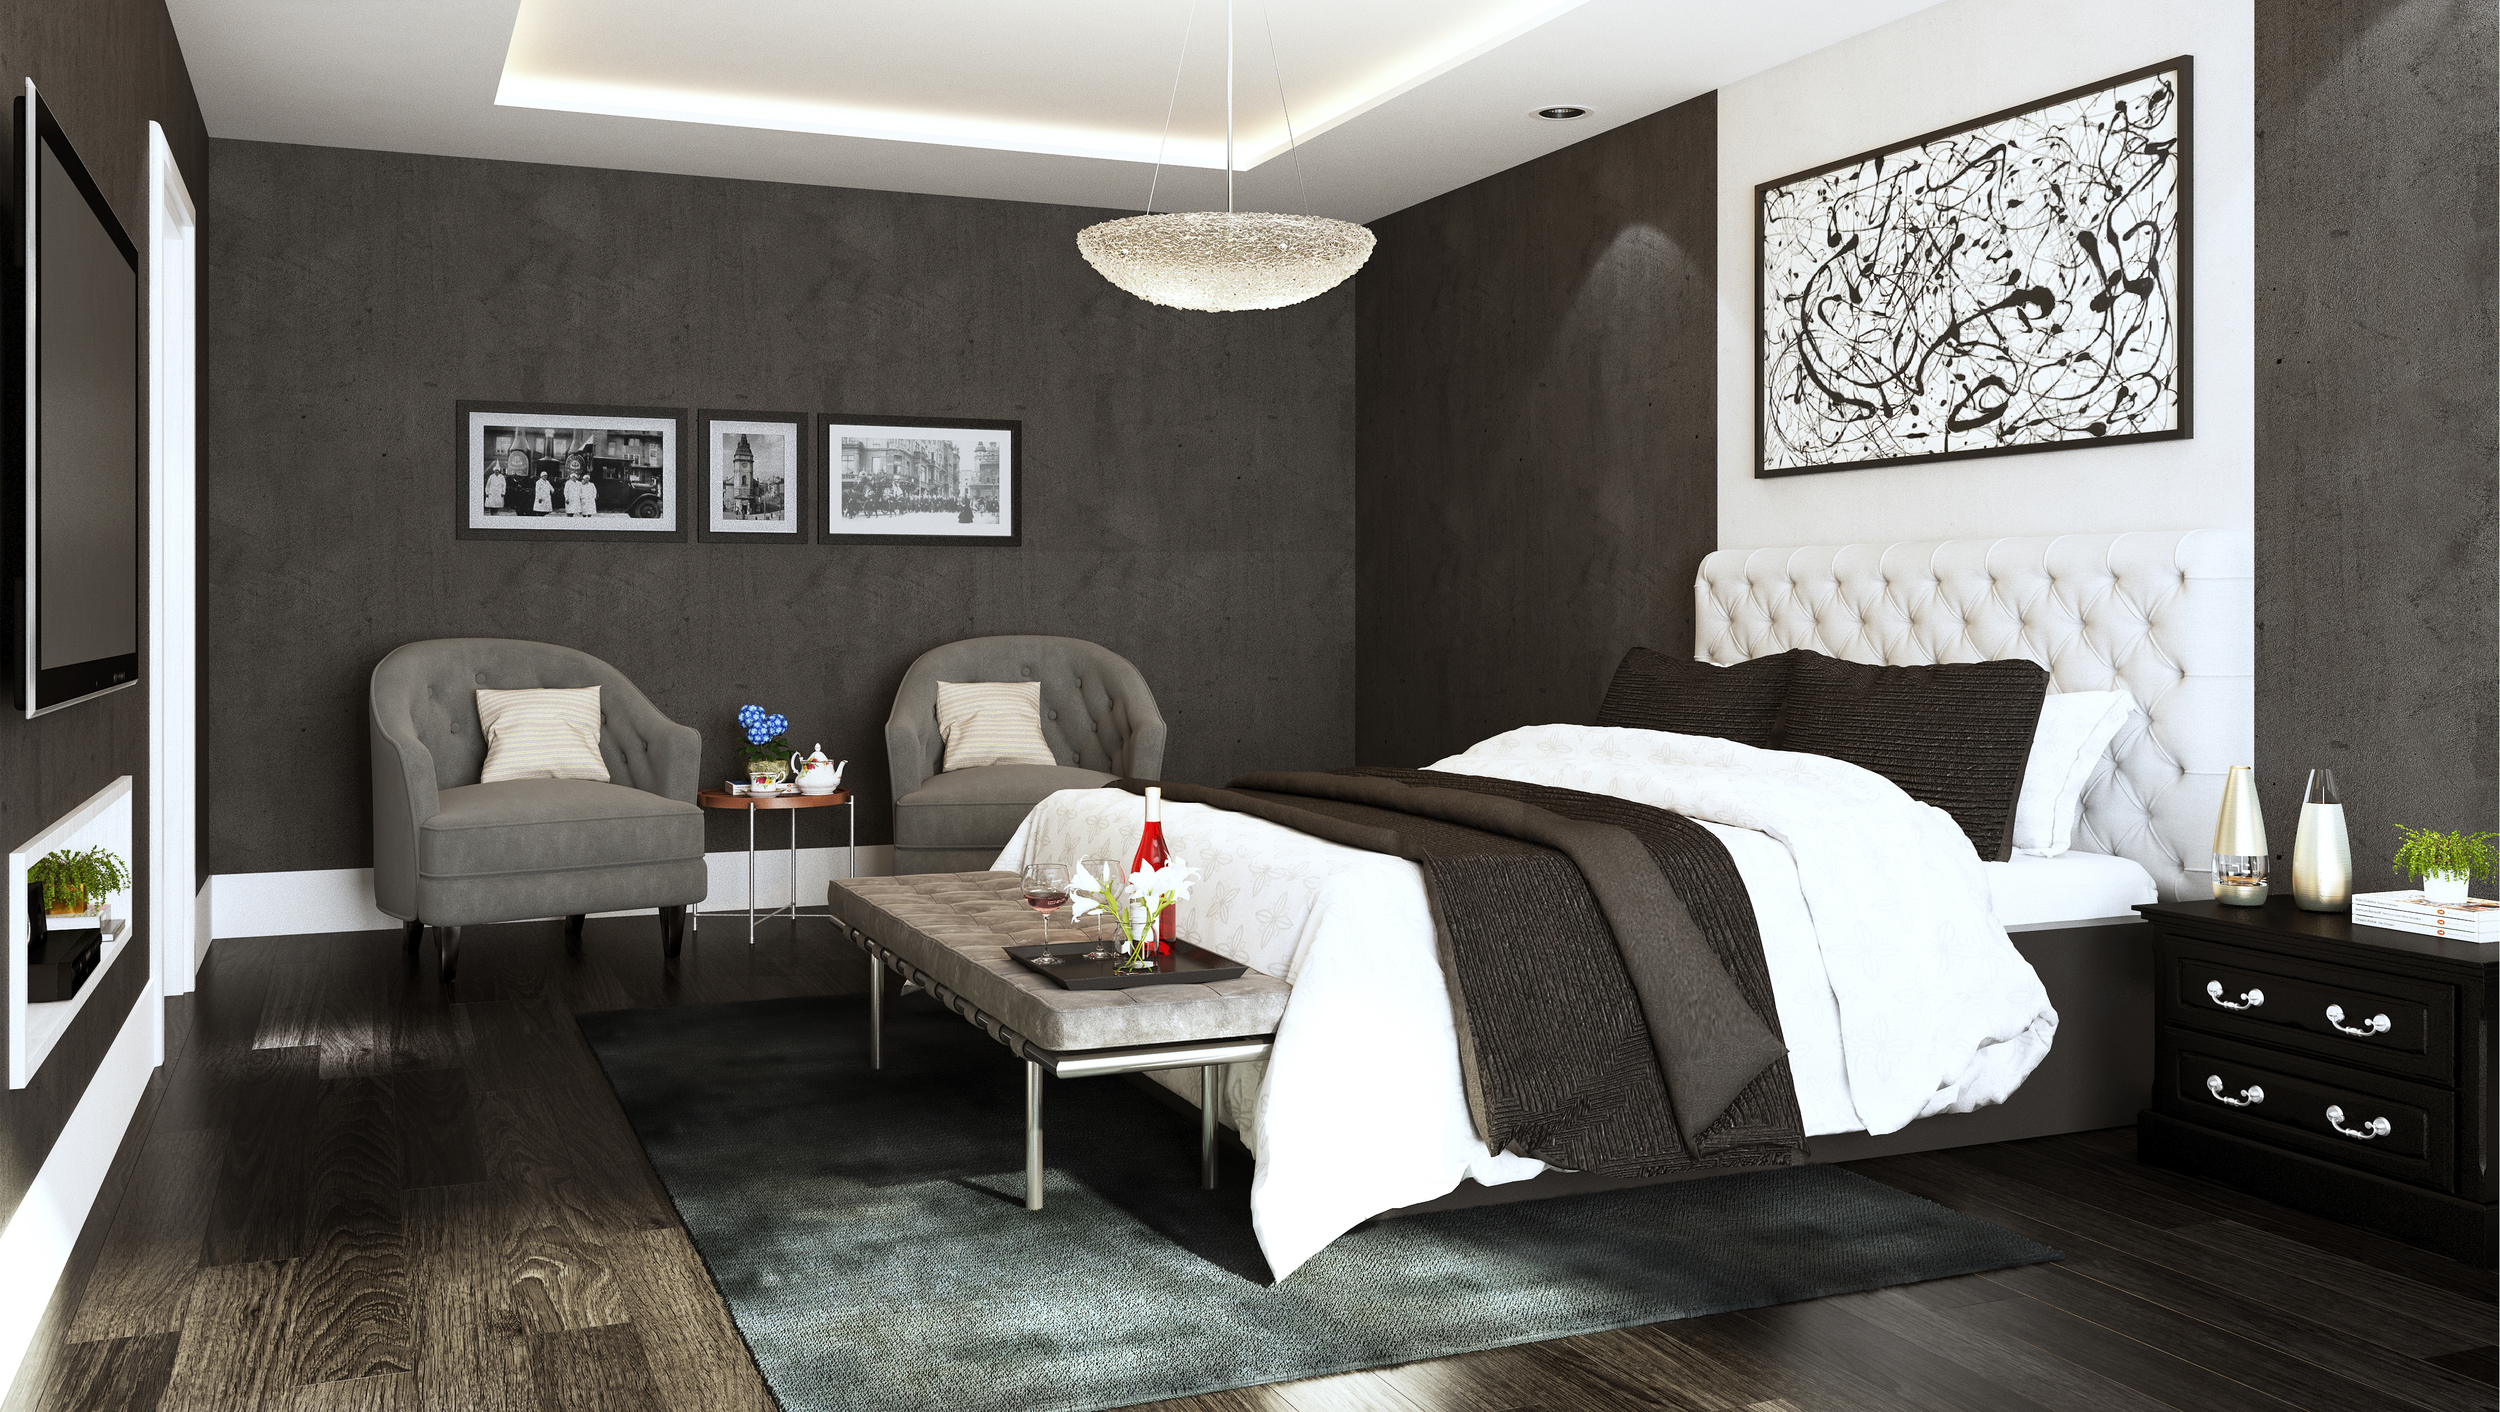 CGI Bedroom Image Photography